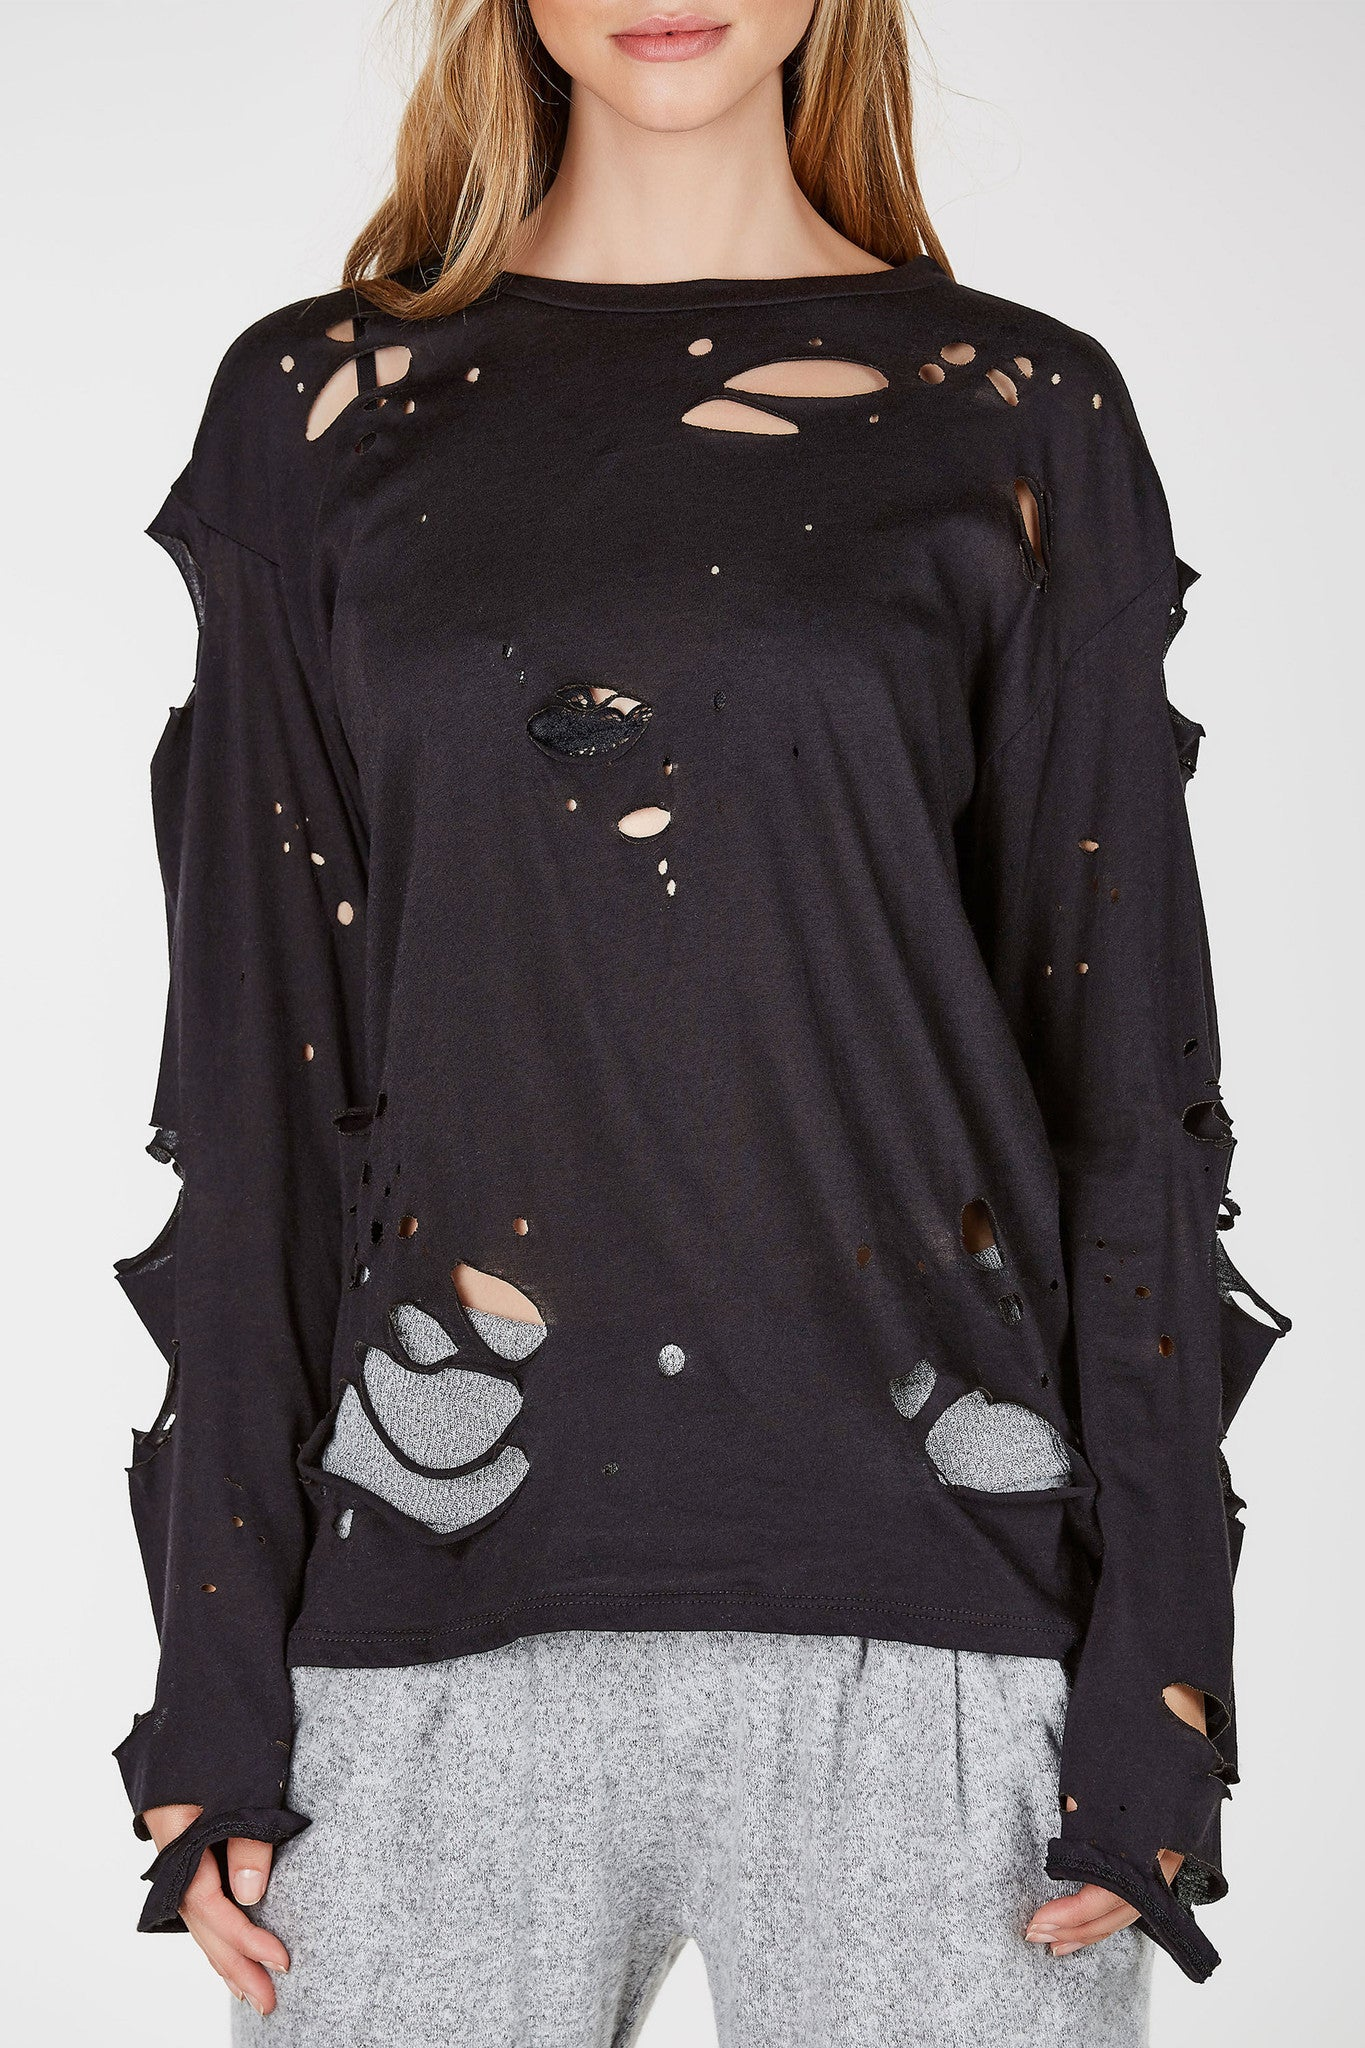 Oversized and distressed long-sleeved top. This crewneck top will add some edge to your fall wardrobe.